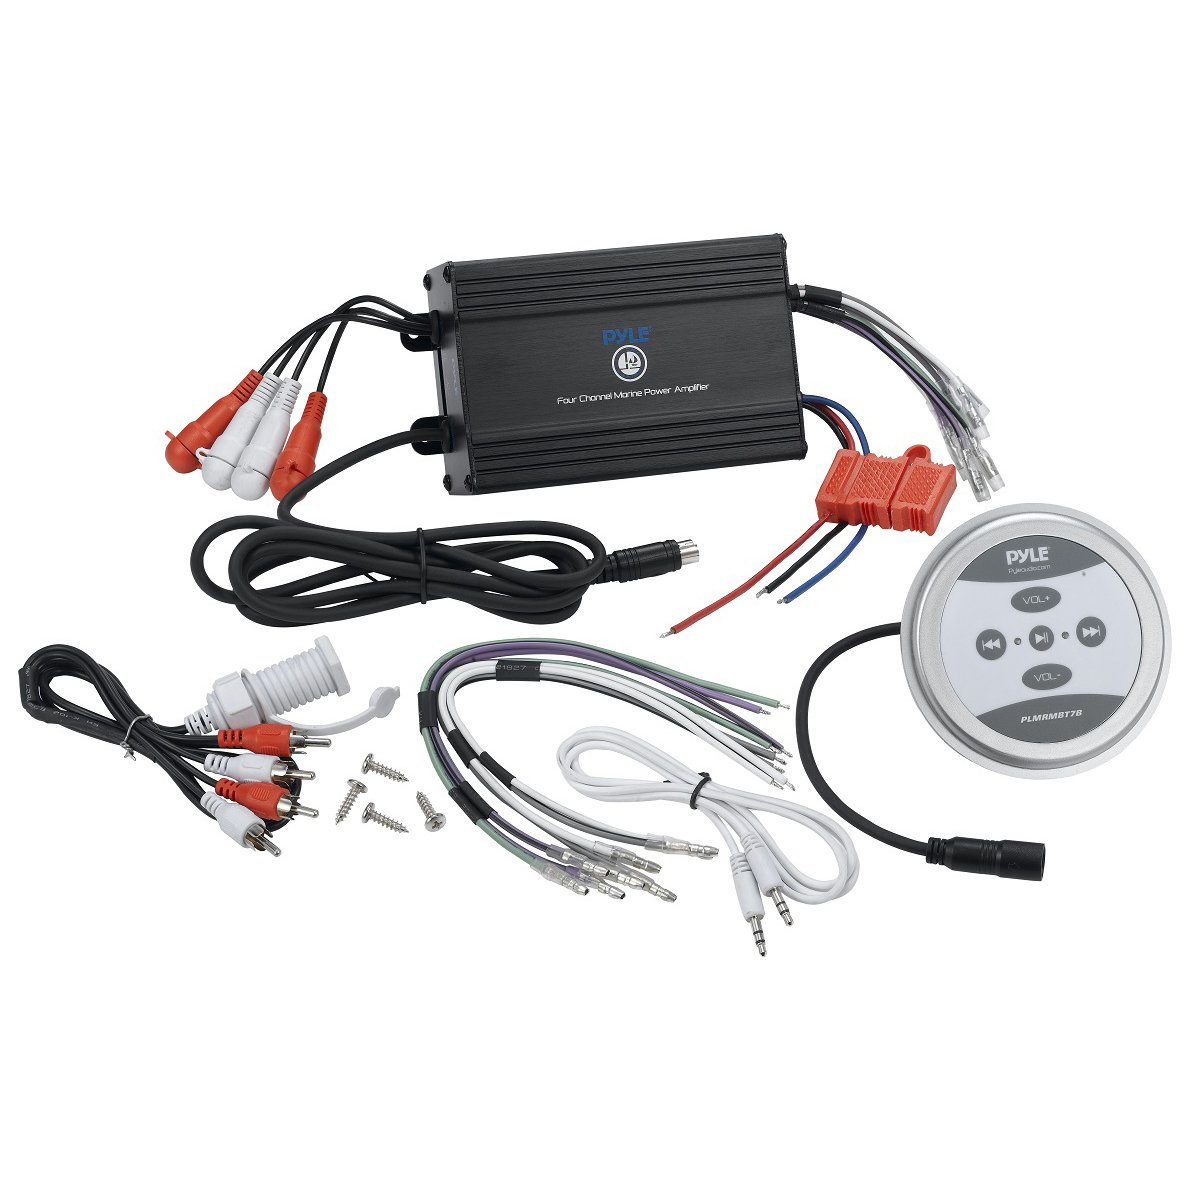 71HiTs xXKL._SL1188_ amazon com pyle compact bluetooth marine amplifier kit Custom Automotive Wiring Harness Kits at metegol.co